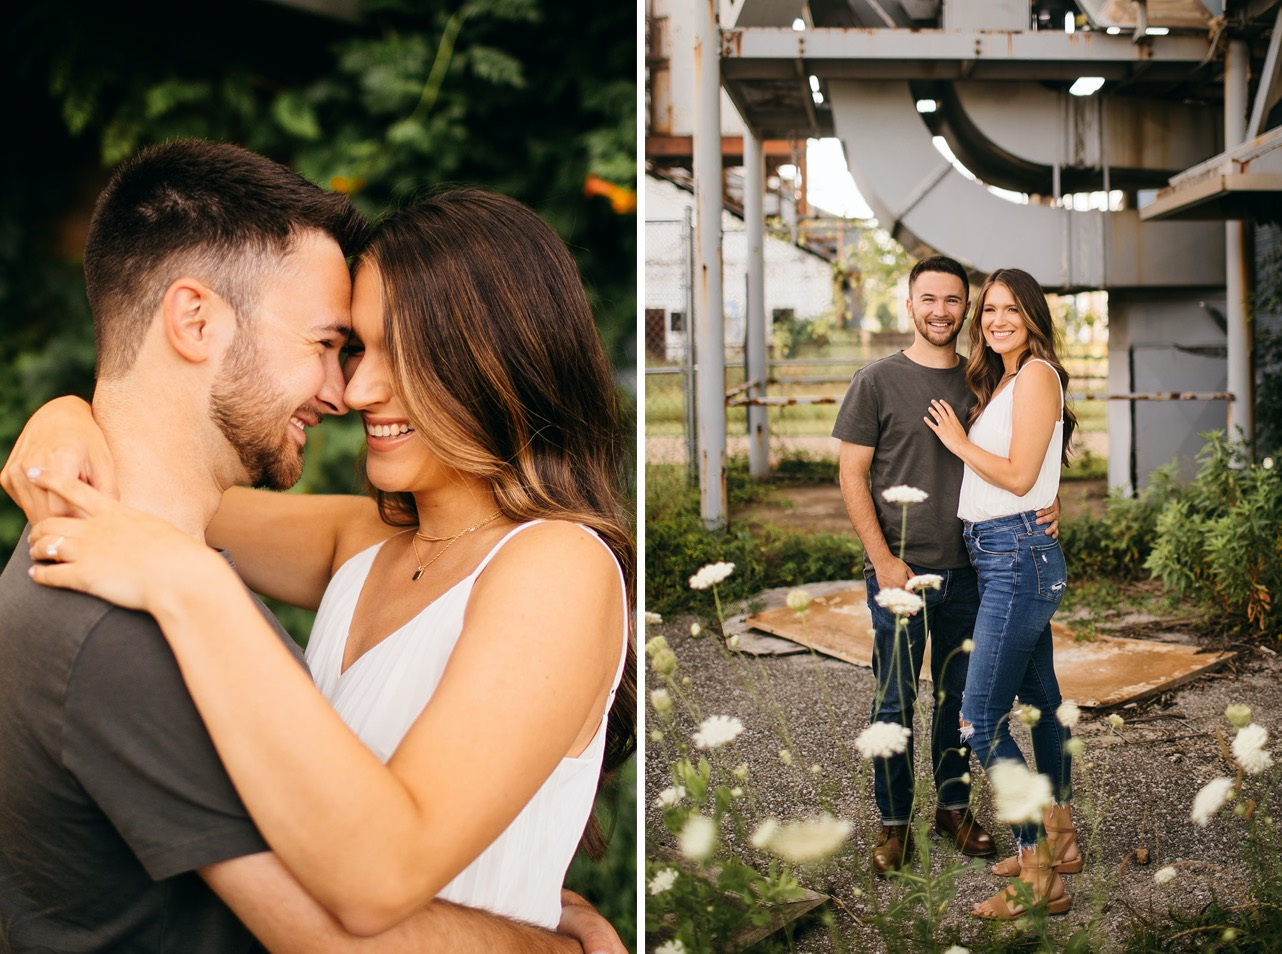 A couple embrace and smile for the camera during their engagement photos at The Foundry in Chattanooga.